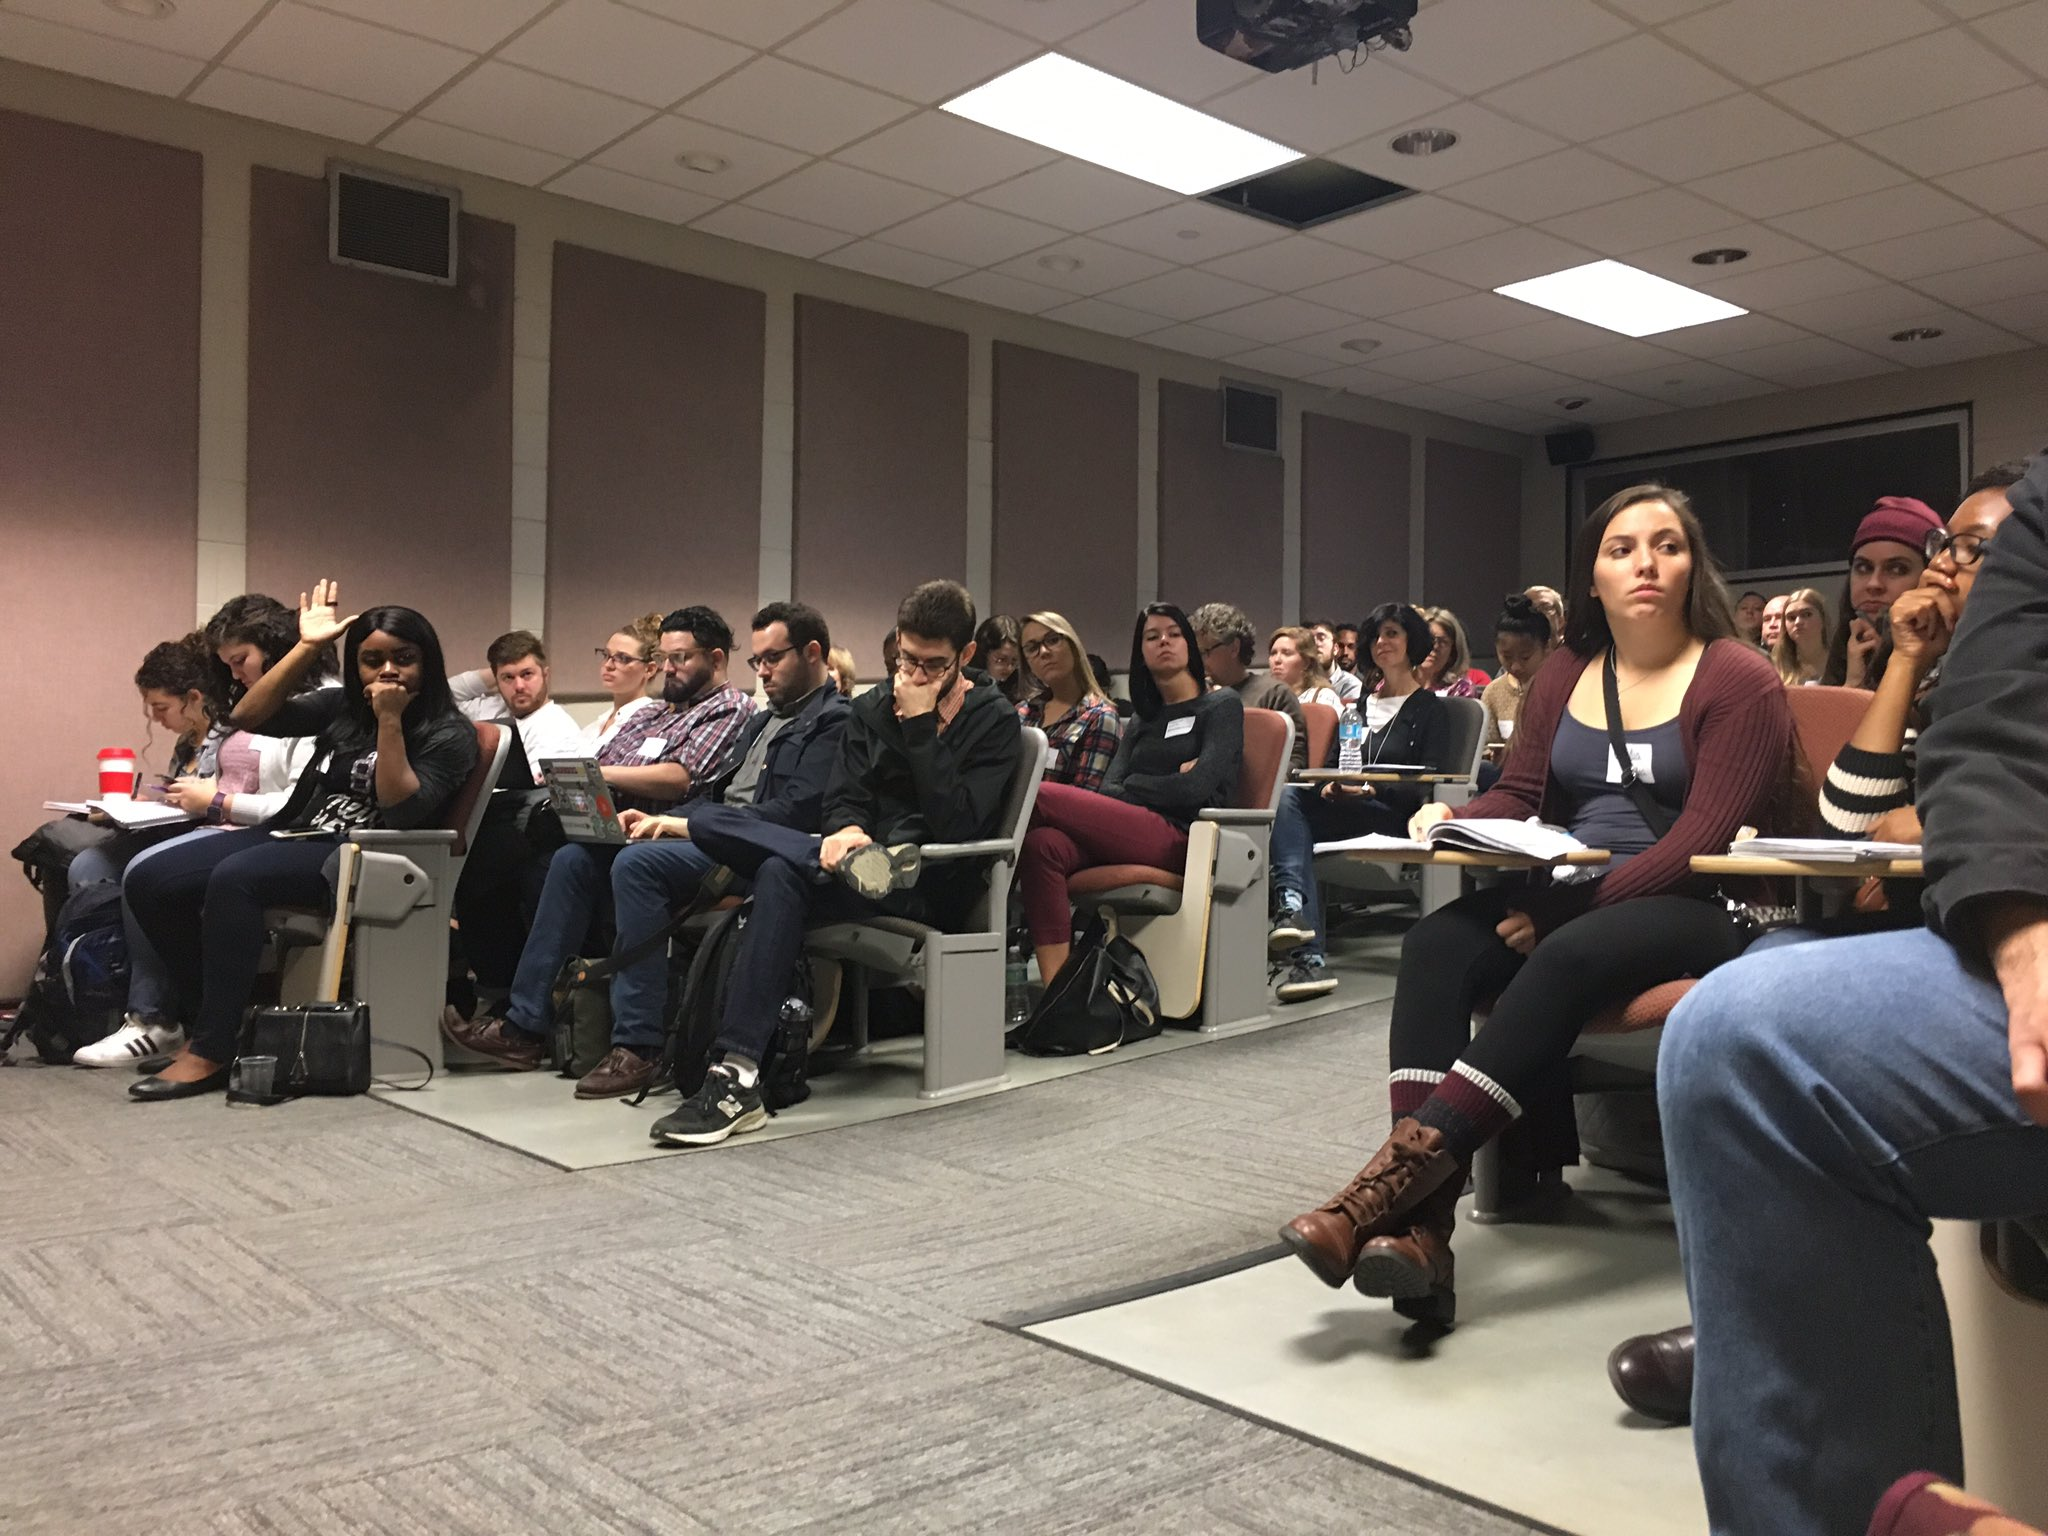 Engaged crowd at @migold and @bydanielvictor's #bcni talk on #objectivity in #journalism. @BCNIPhilly #bcni16 https://t.co/iyaE5kERbo